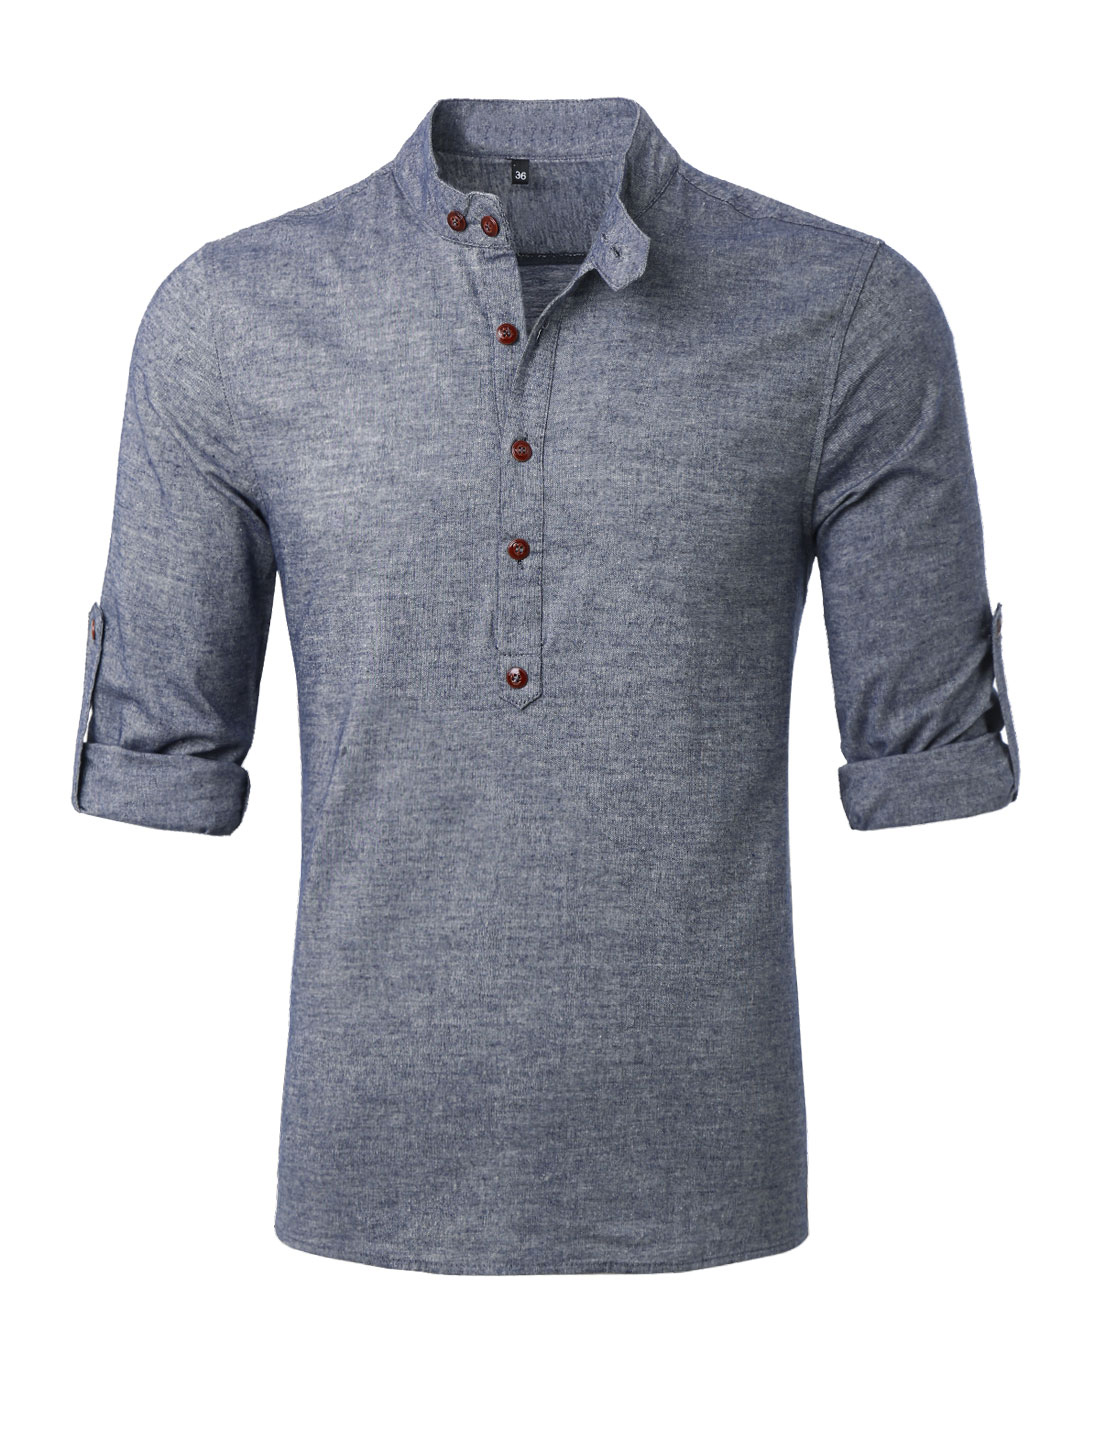 Men Half Button Closed Roll Up Sleeves Leisure Henley Shirt Light Cool Gray M